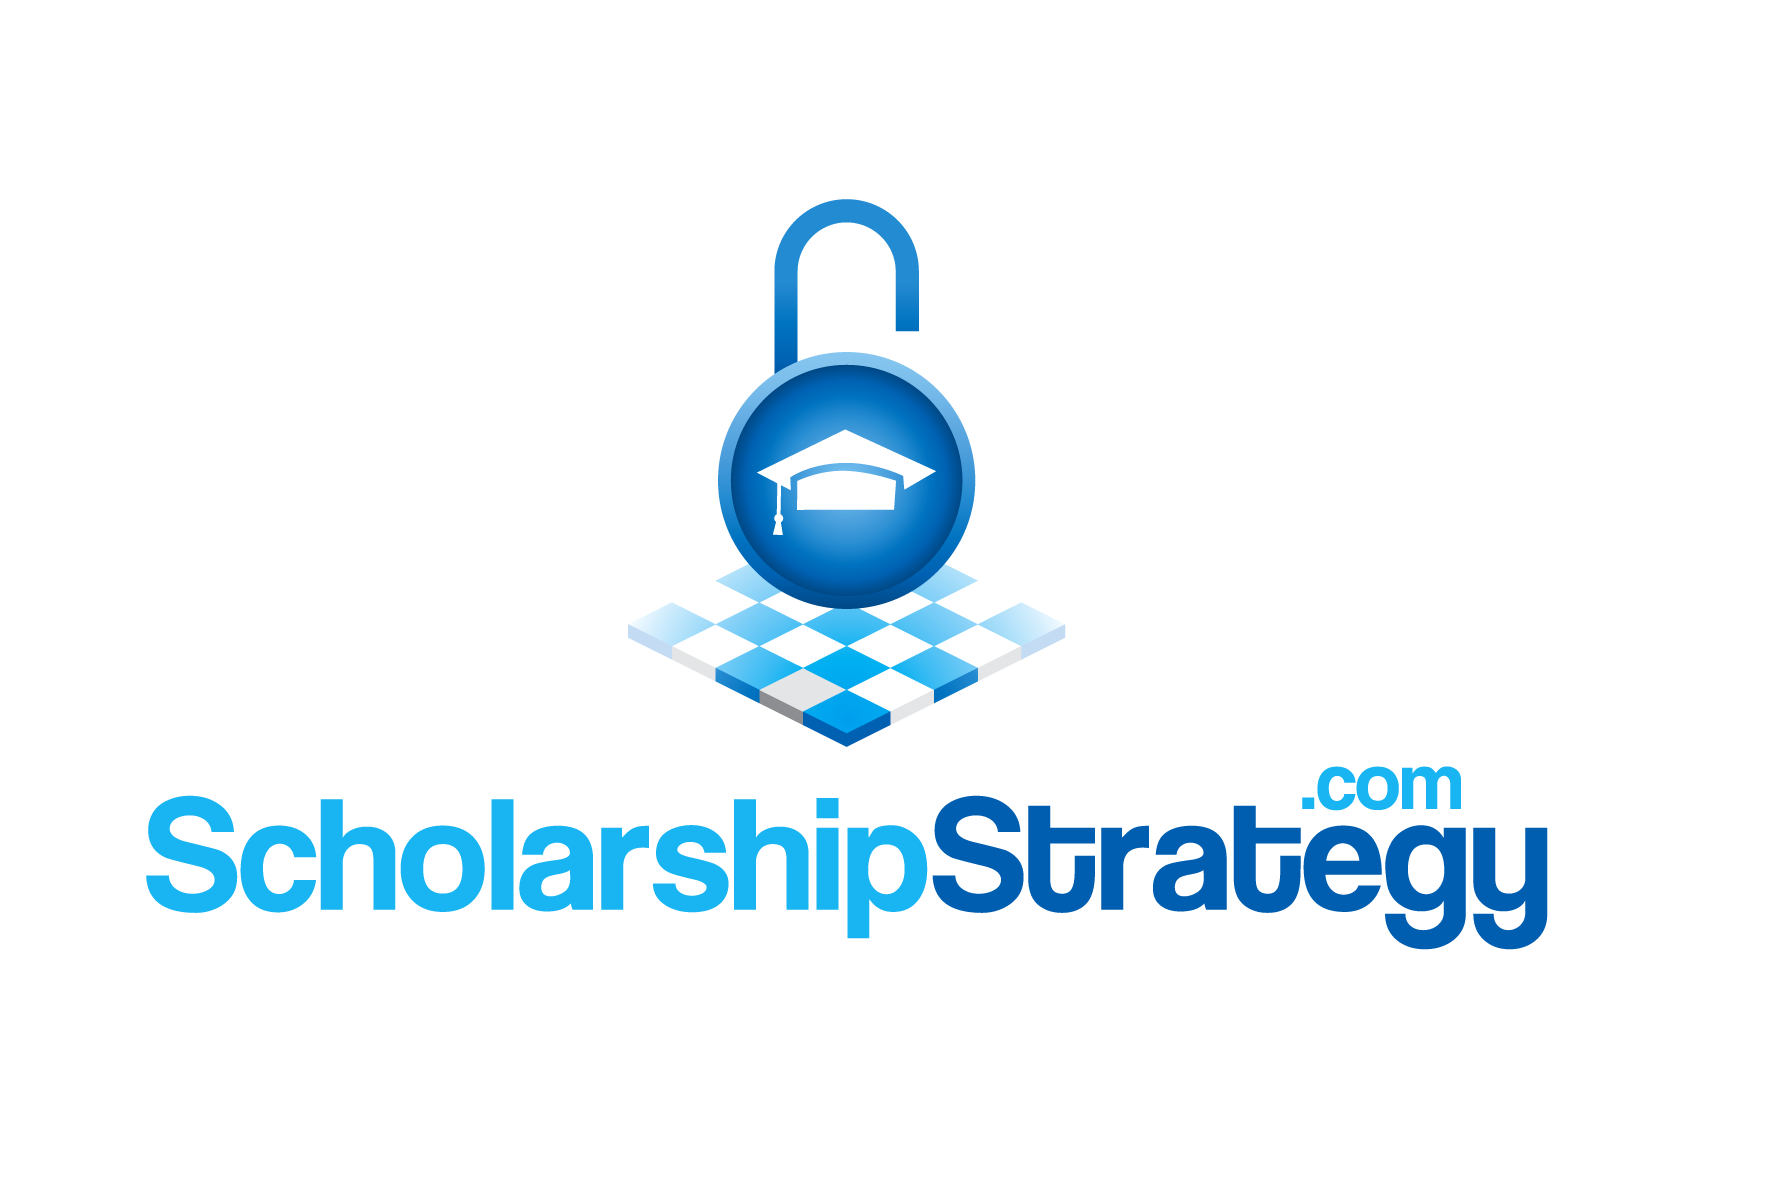 Logo Design by luna - Entry No. 70 in the Logo Design Contest Captivating Logo Design for Scholarshipstrategy.com.